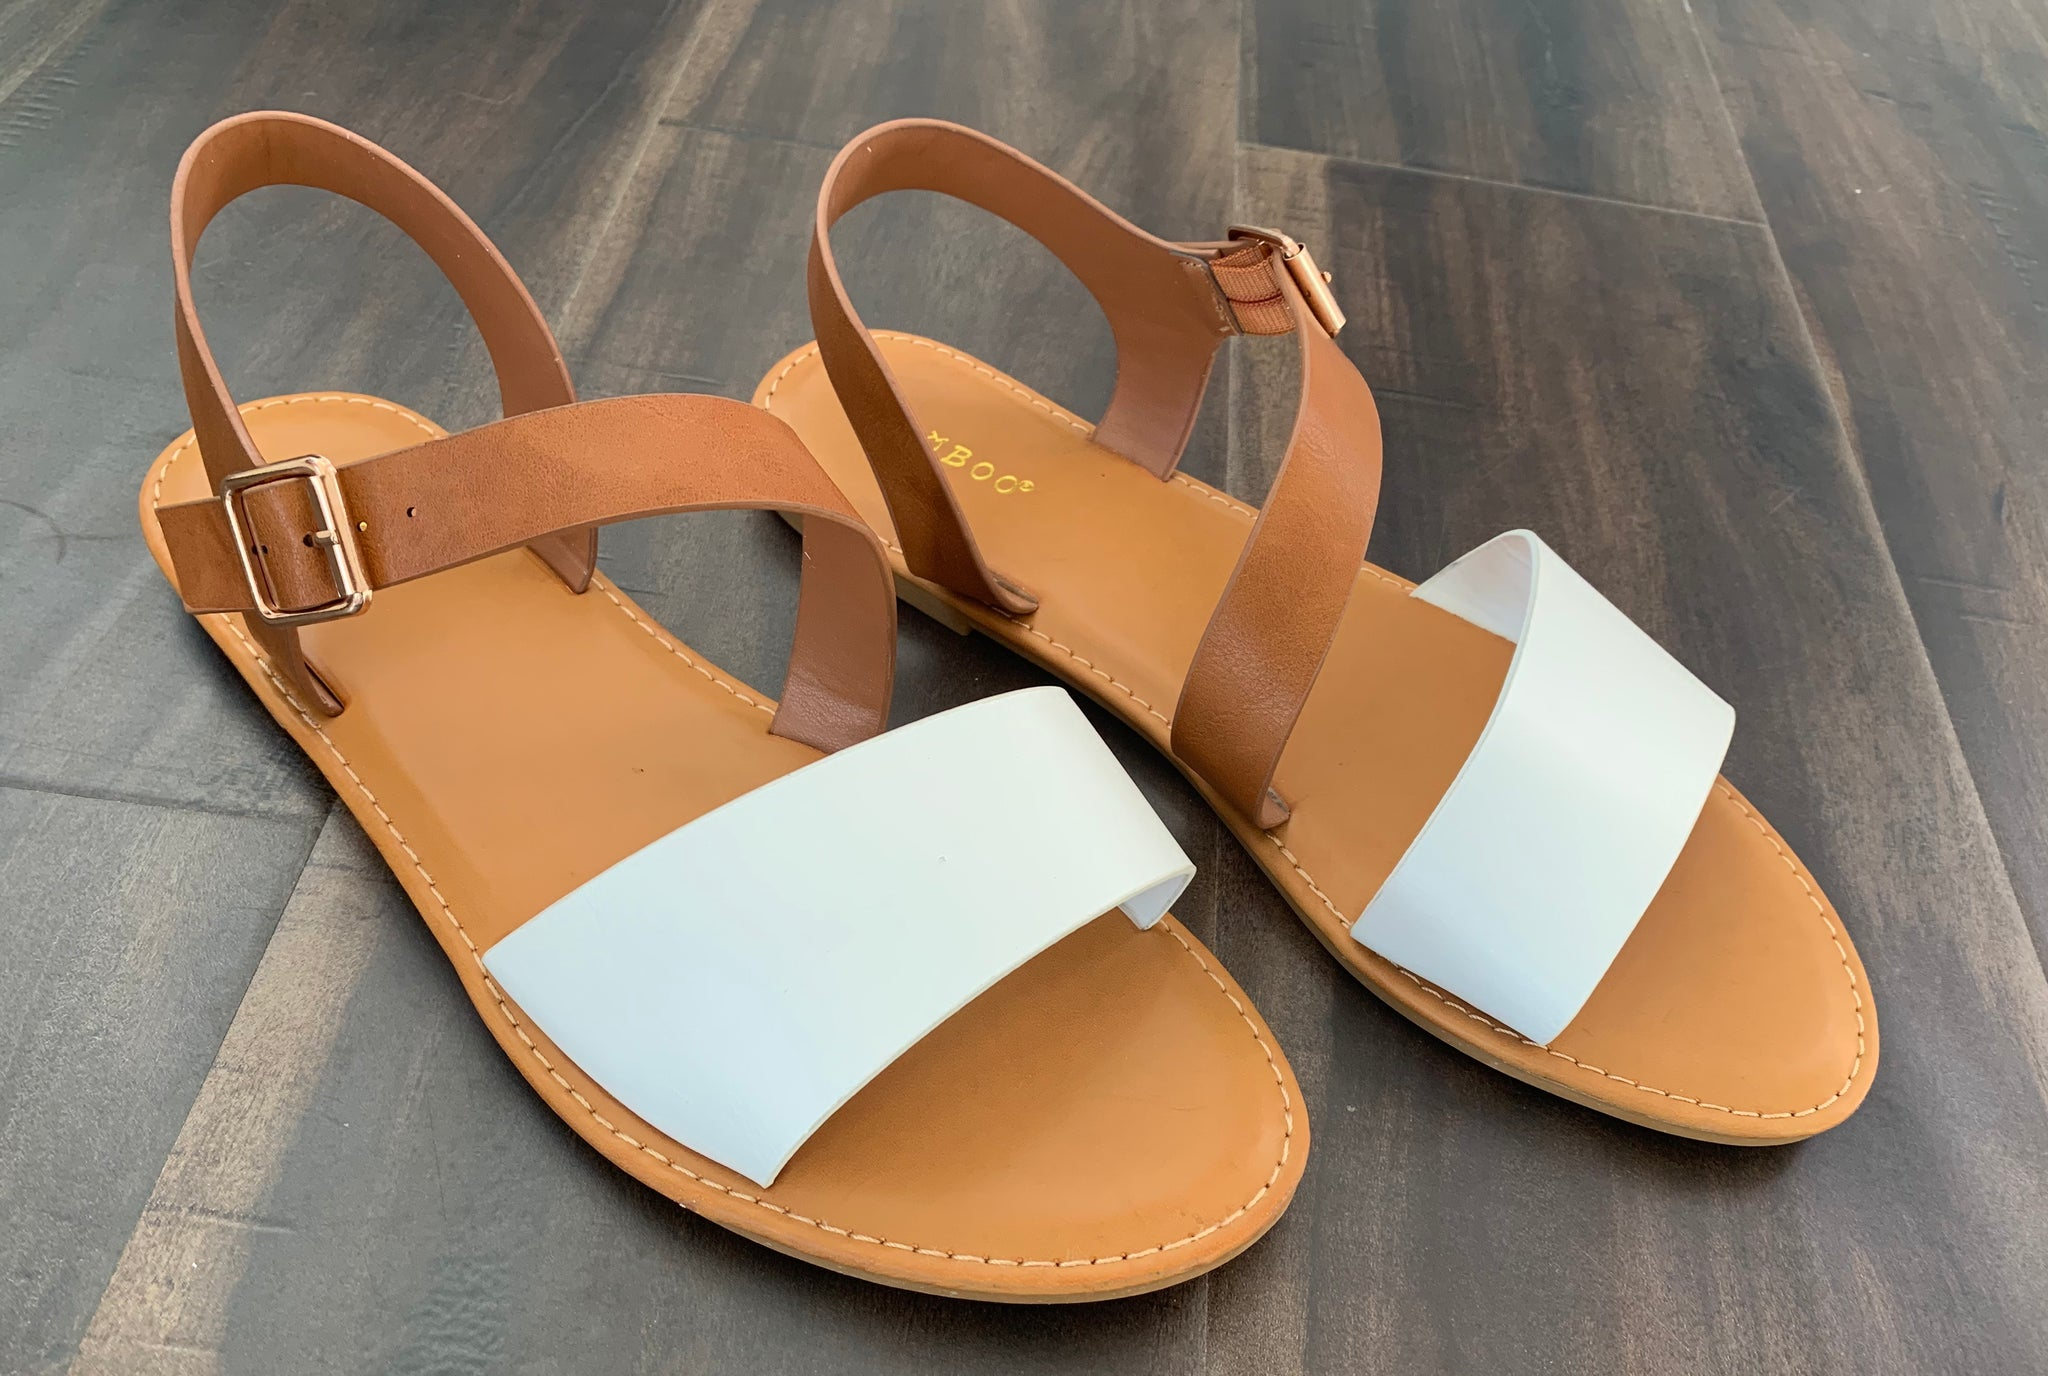 Madison Flat Sandal-White/Leather Brown 19.07.09A